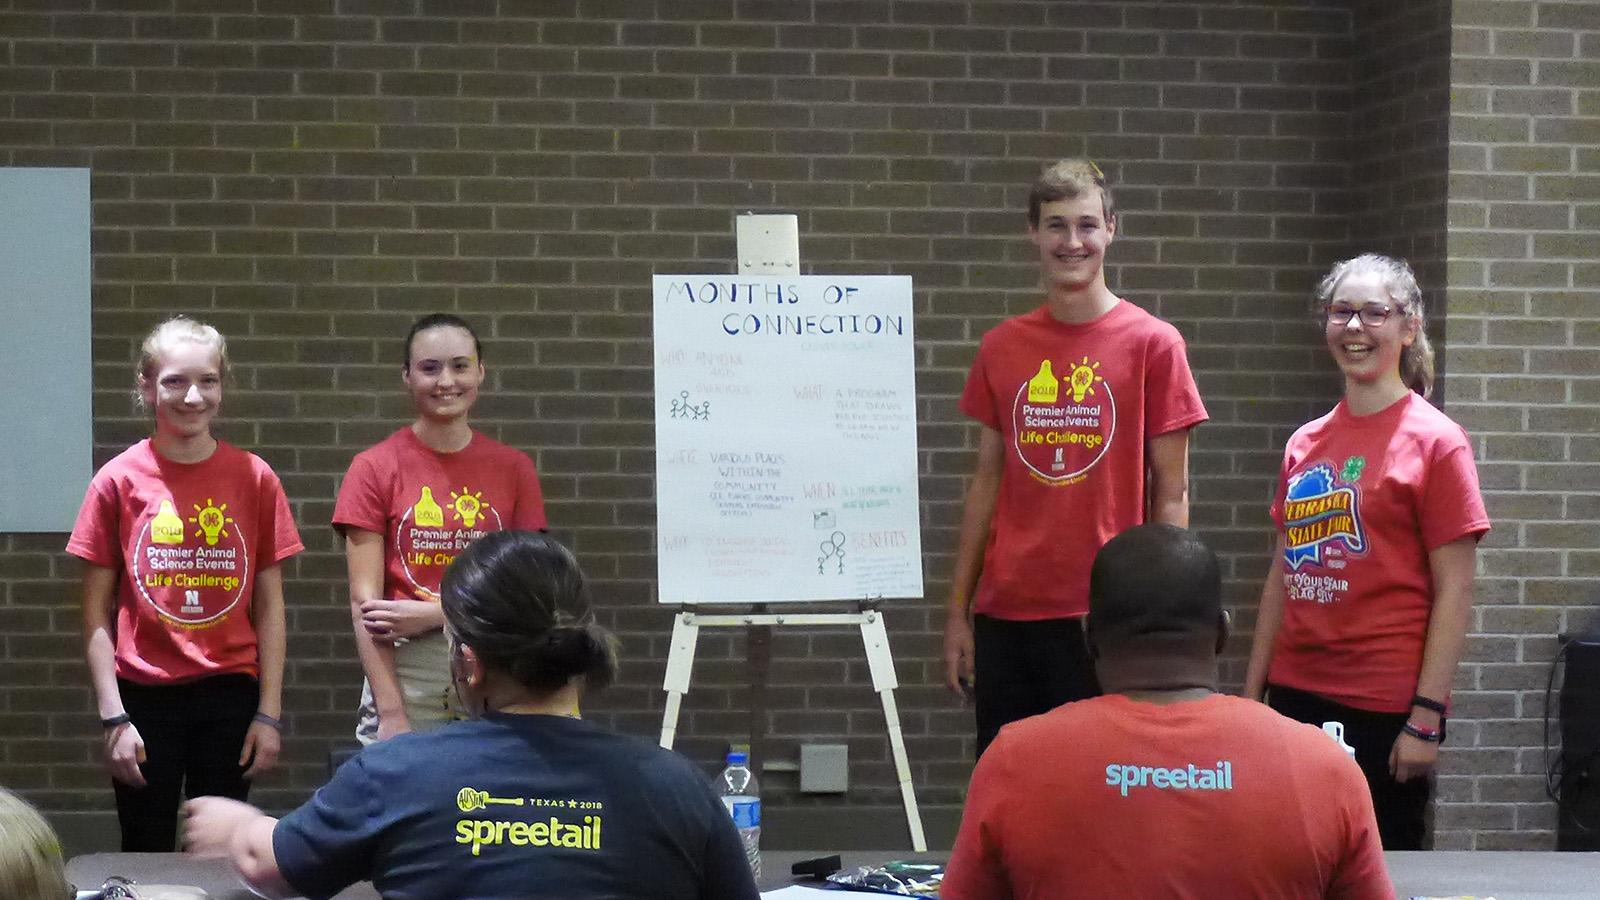 Four youth with a poster standing before two judges